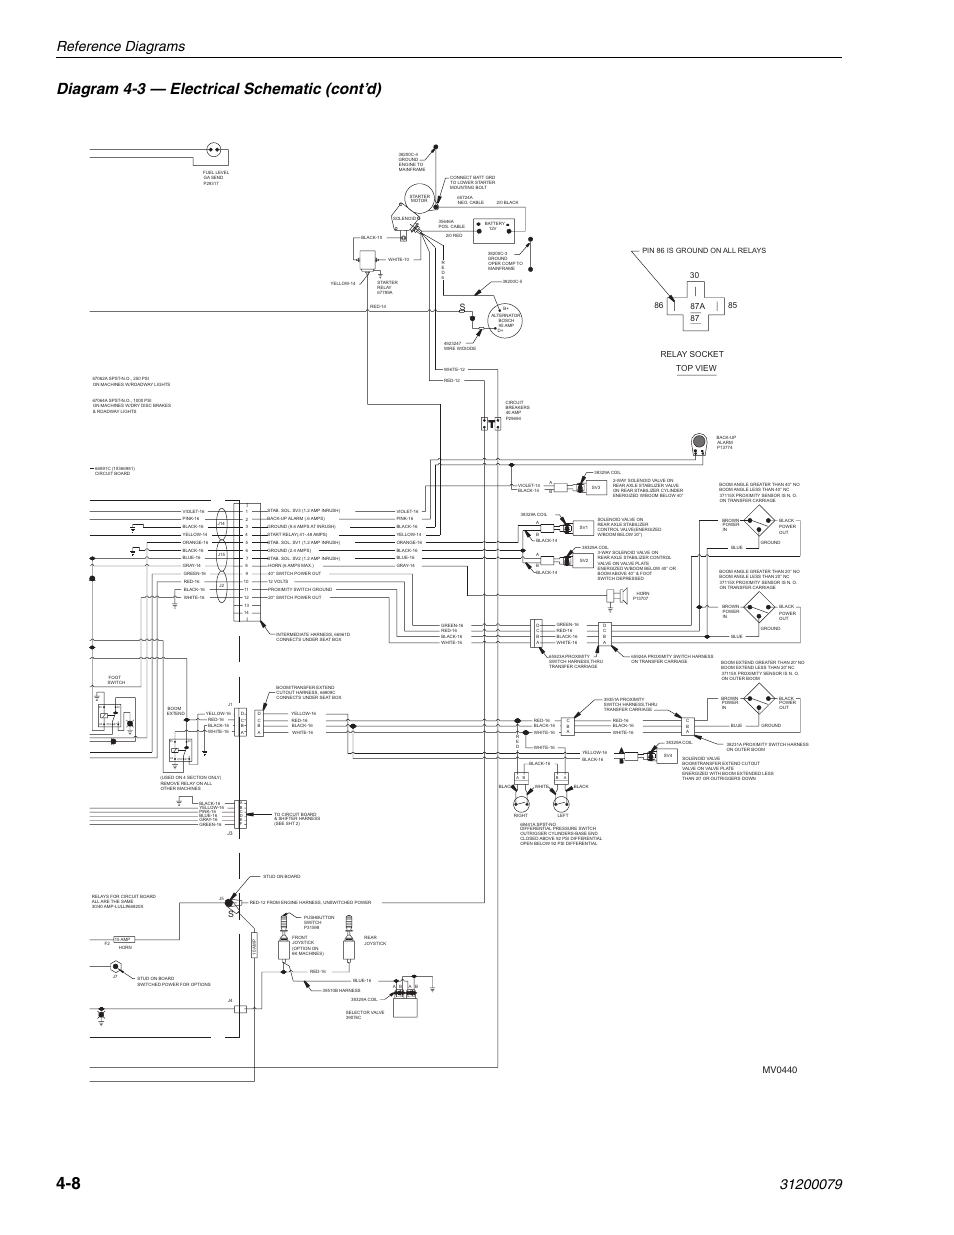 lull wiring diagram schematics wiring diagrams u2022 rh orwellvets co lull 644d-34 wiring diagram lull 644d-34 wiring diagram